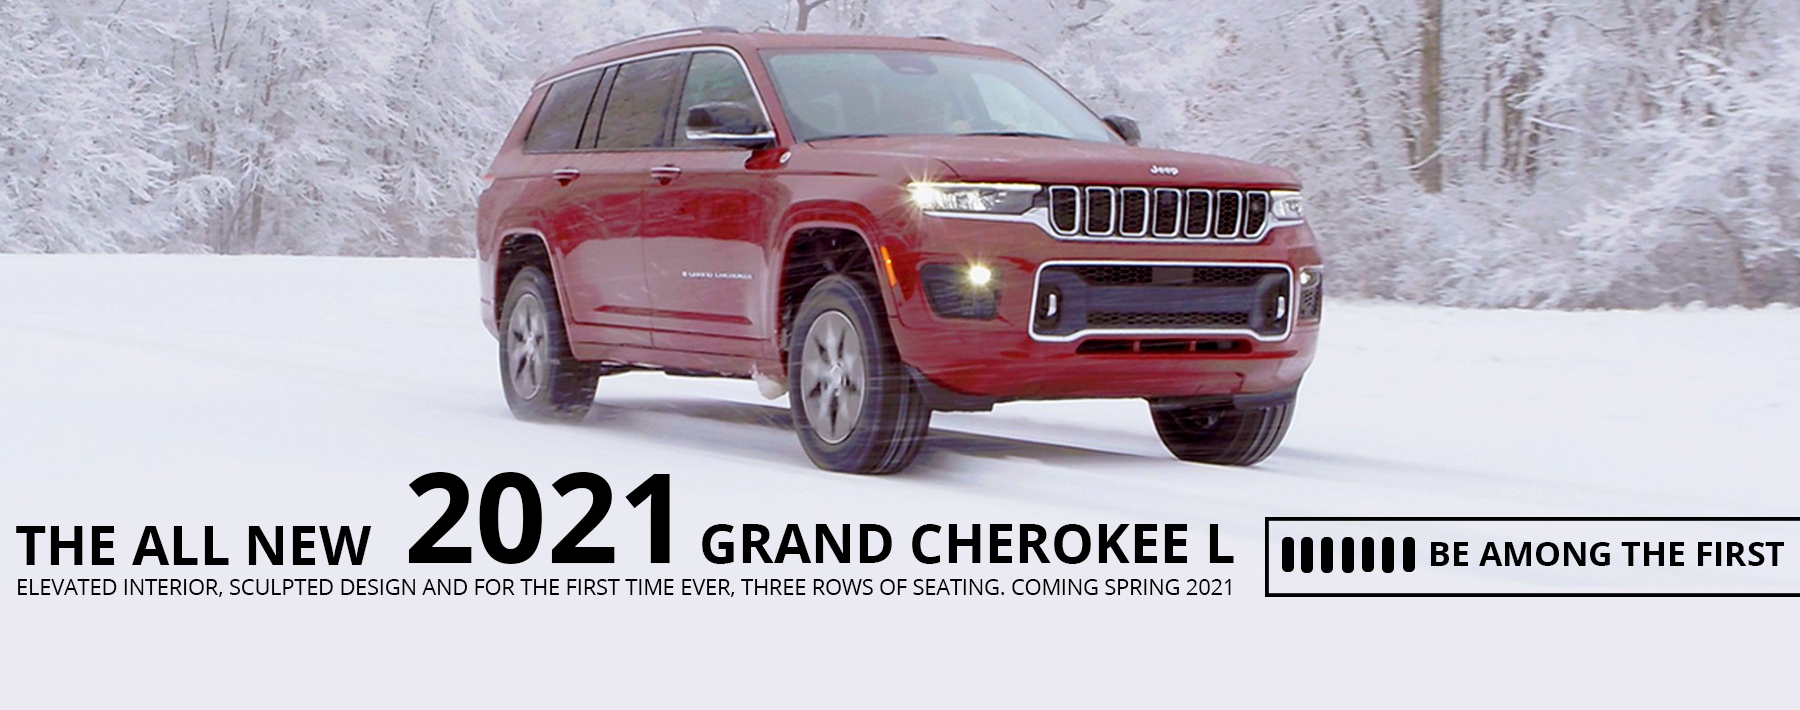 JeepGrandCherokeeL2021_LearnMore (2)